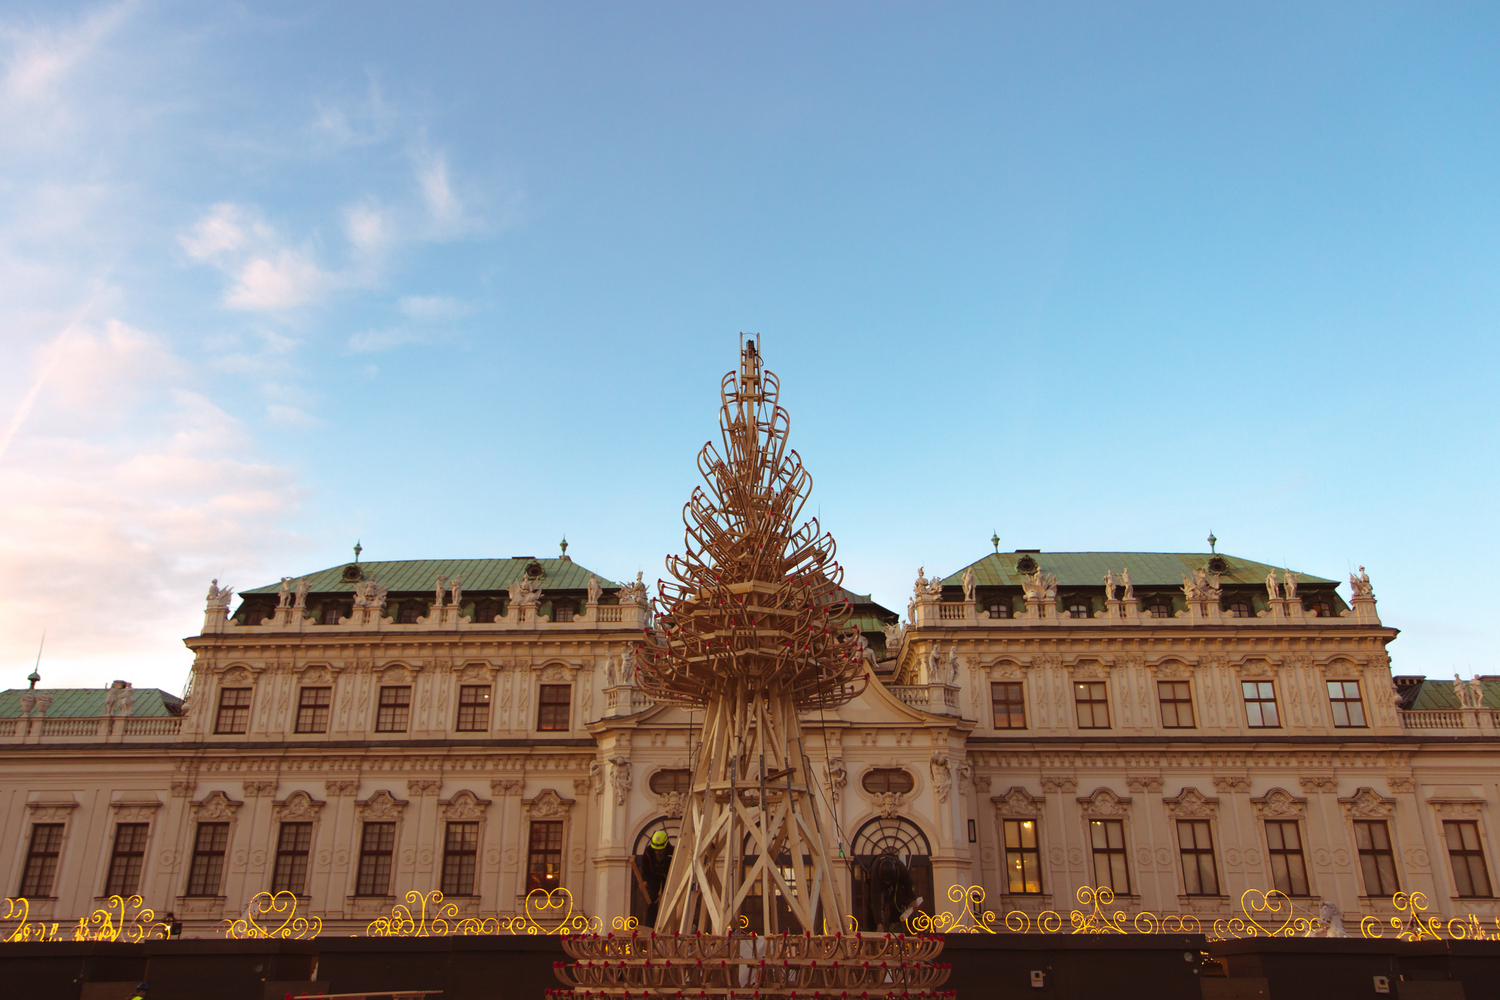 Hello Wood Builds 5 Wooden Christmas Trees in Cities Throughout Europe,Vienna. Image © Victor Moye-Noza